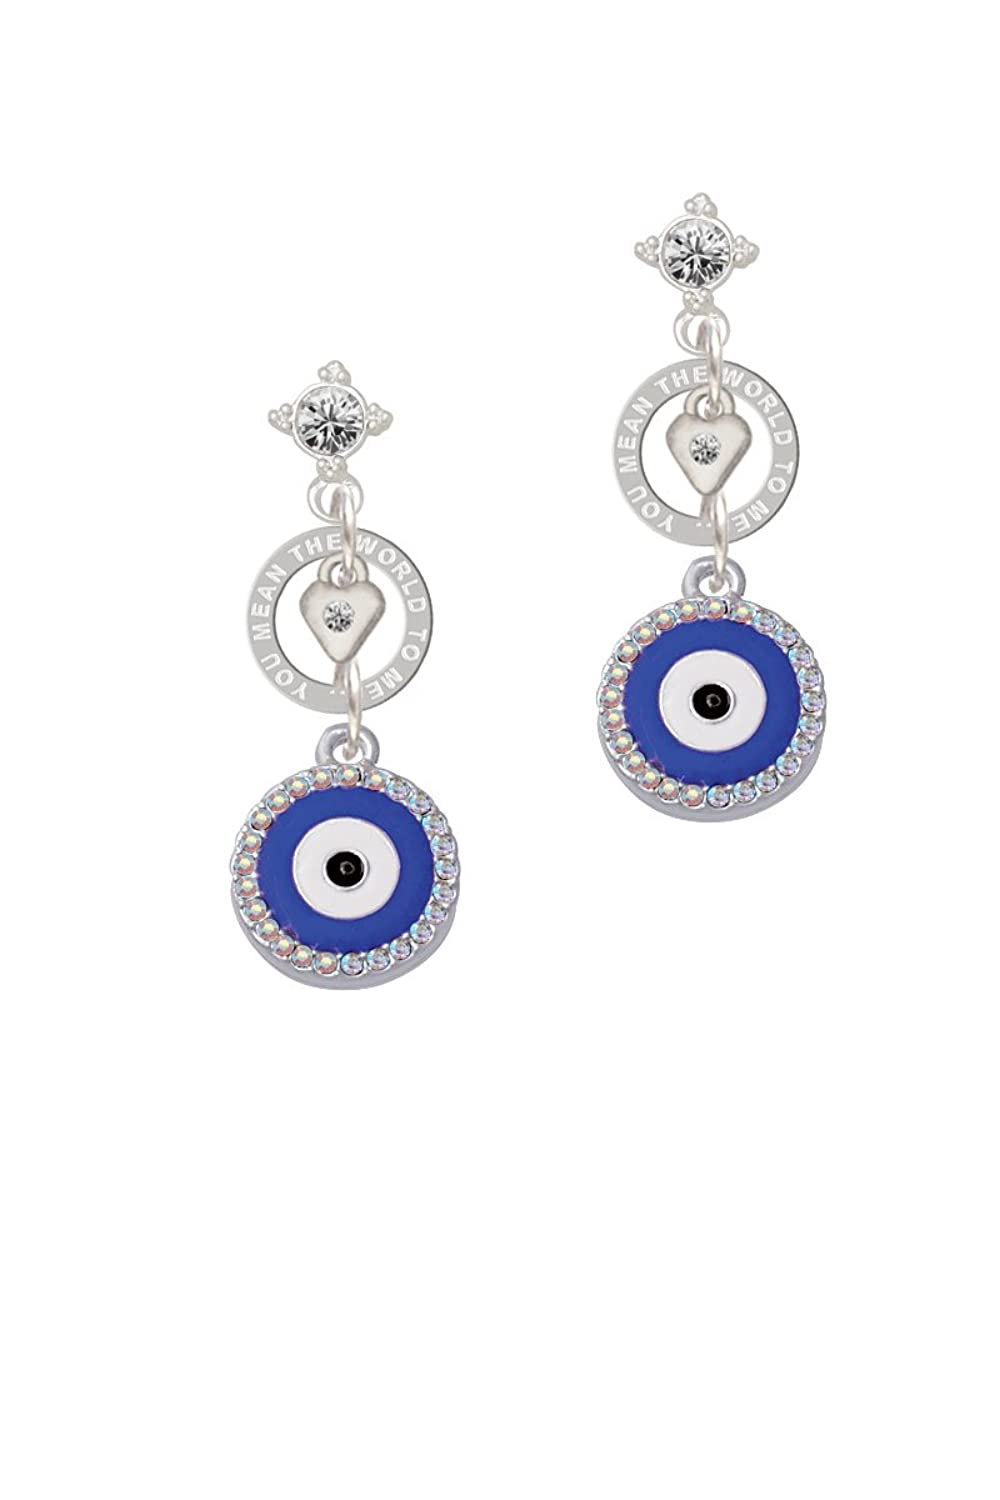 Large Blue Evil Eye with AB Crystal Border - You Mean the World Eternity Earring